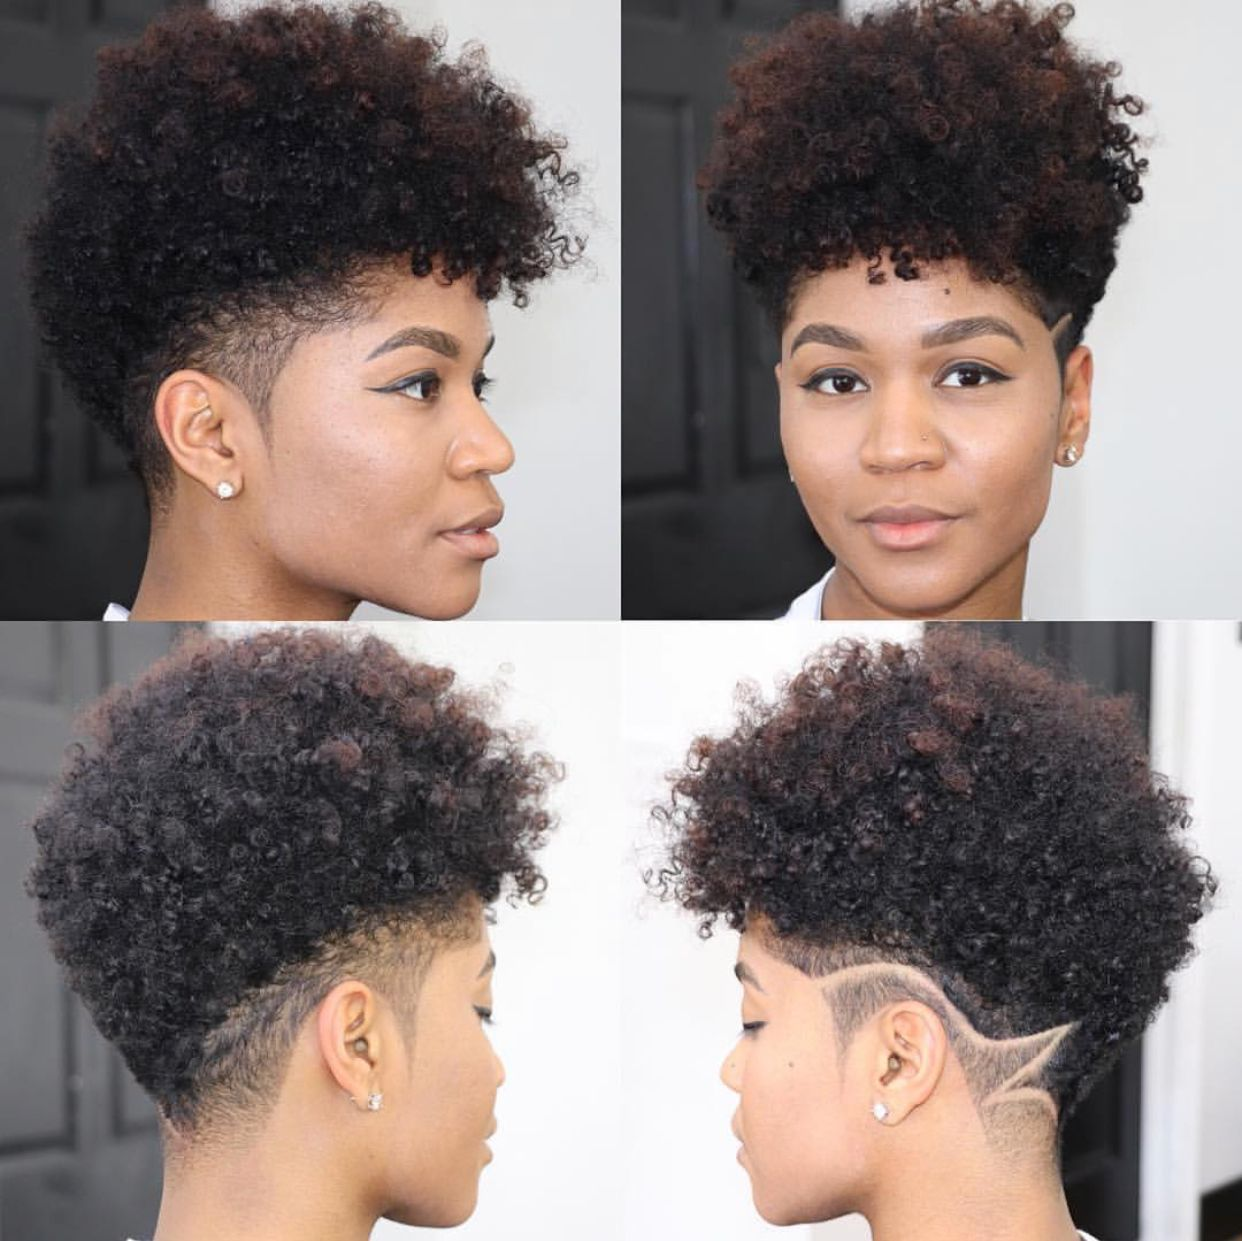 For more #Dopehercuts Follow @Hercutsuk on IG Pinterest & Facebook  www.hercuts.com | Tapered natural hair, Natural hair styles, Short natural  hair styles